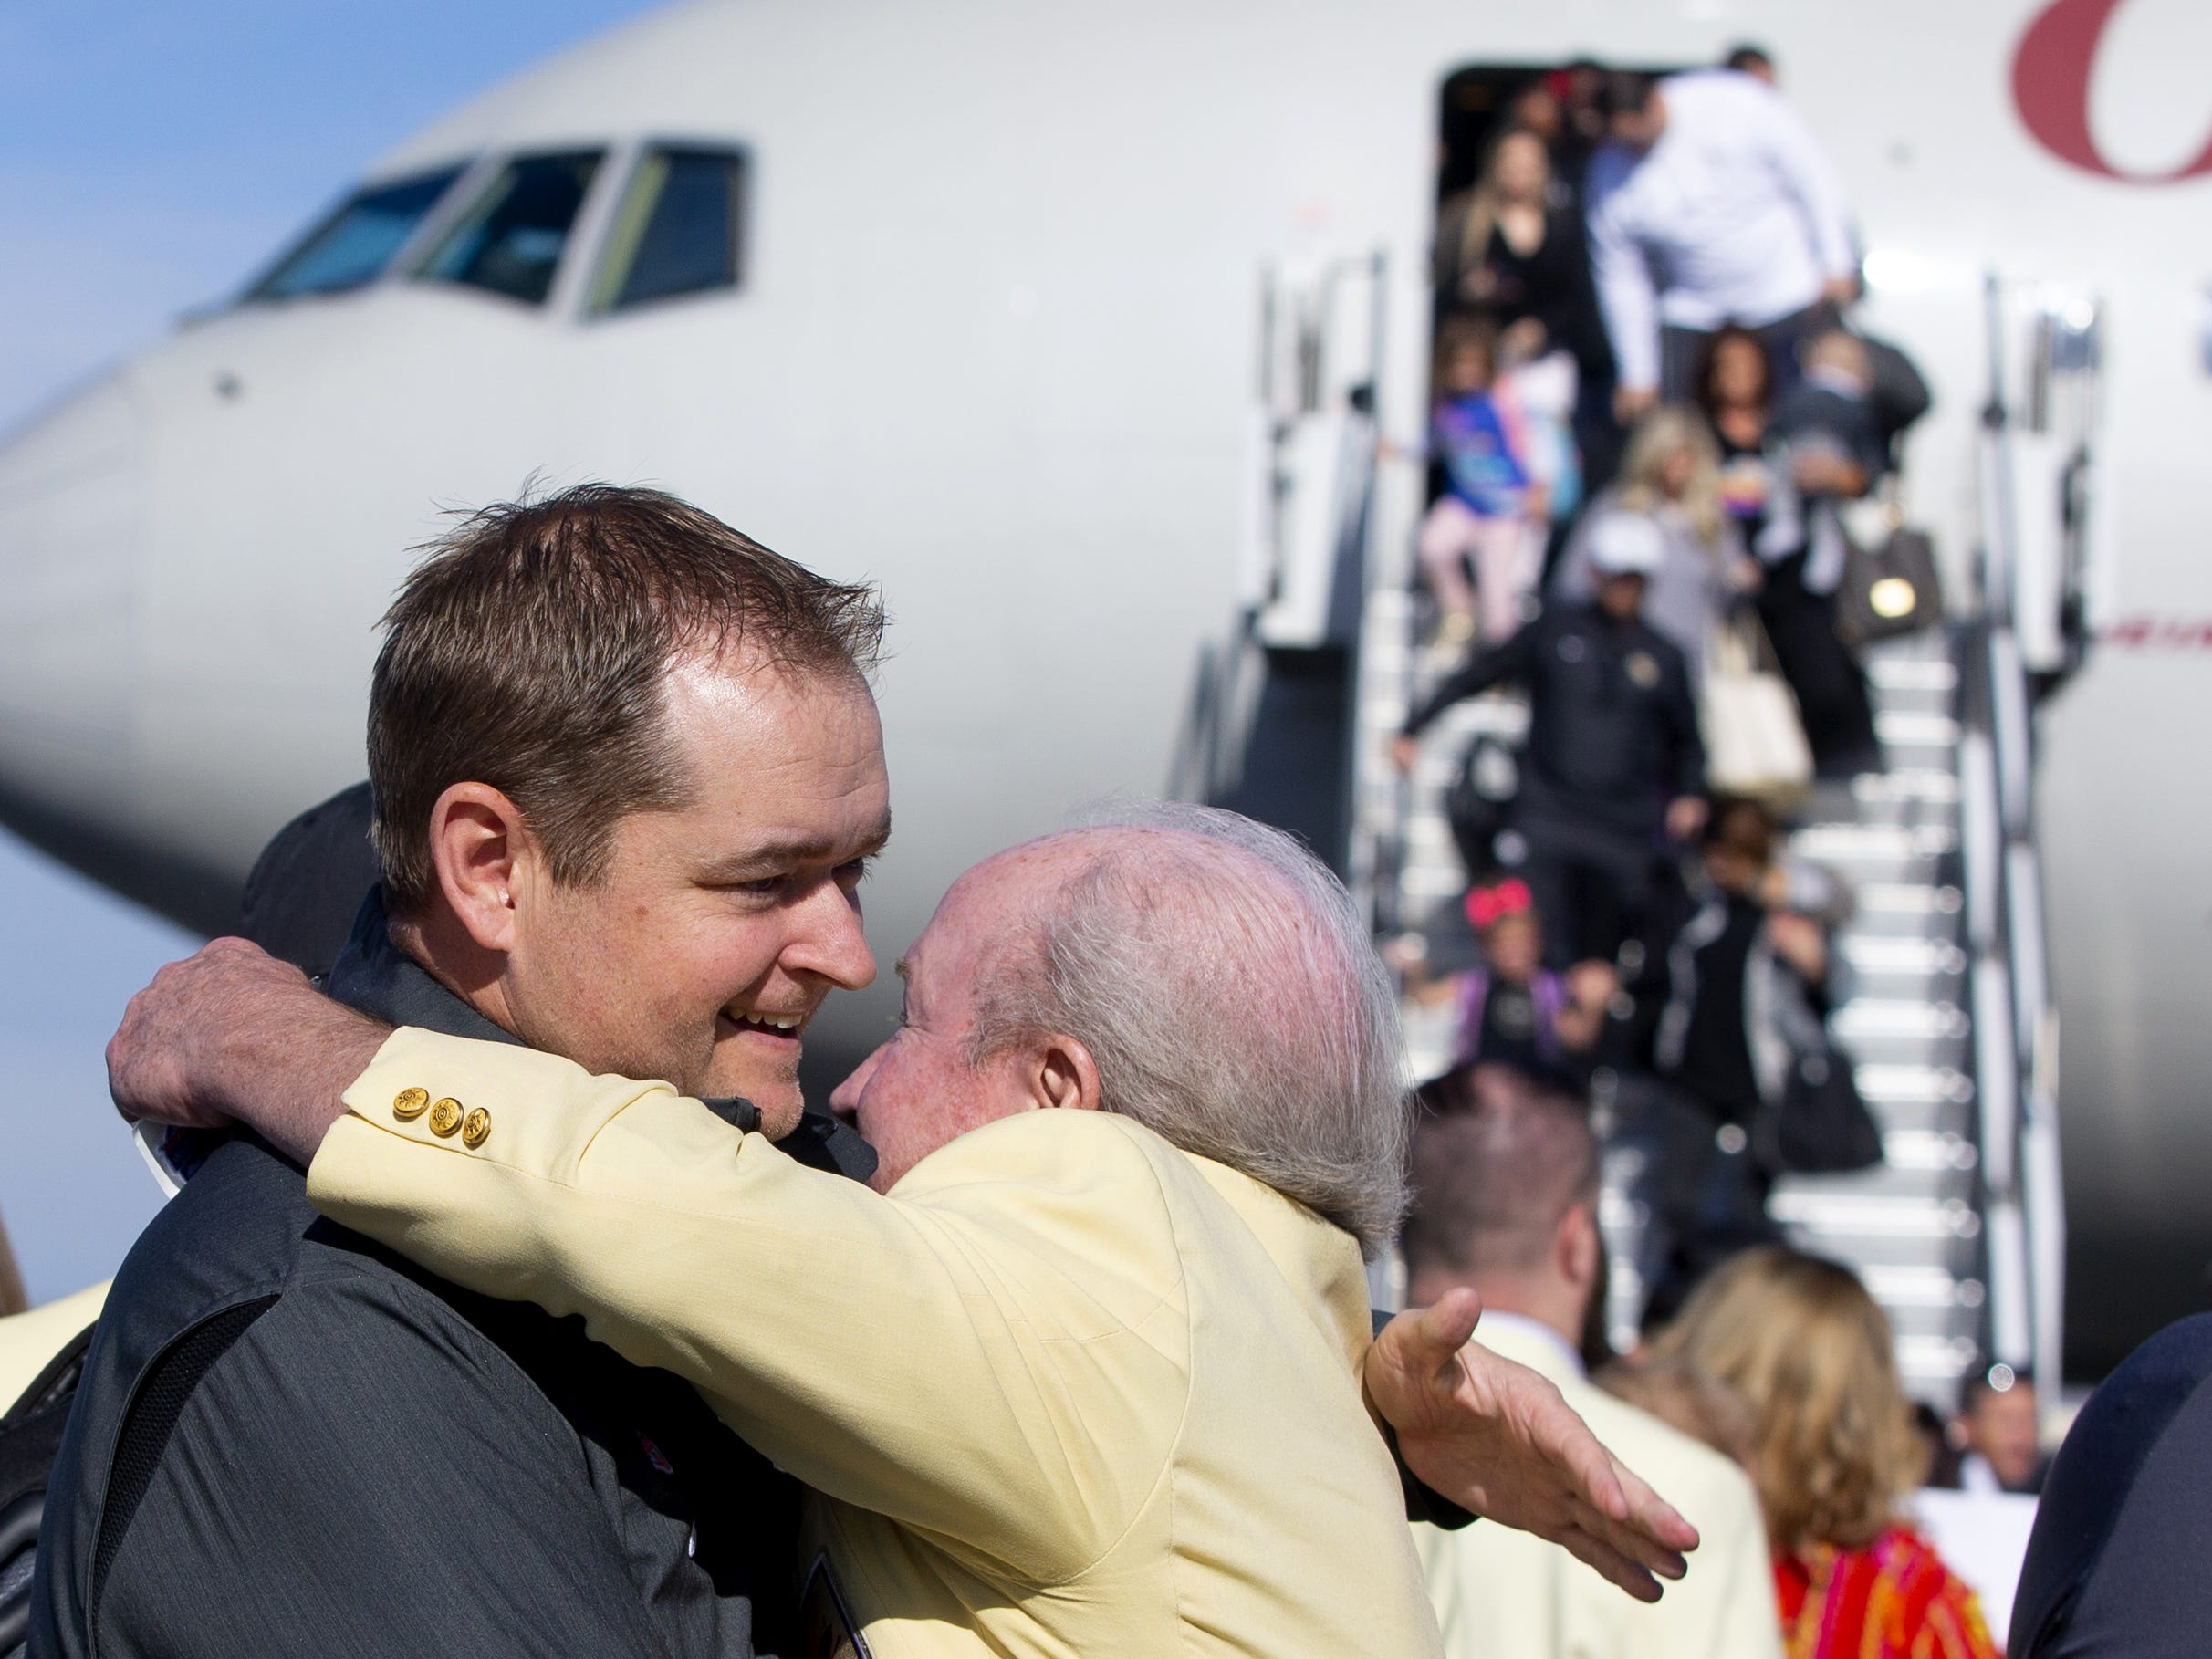 Central Florida head football coach Josh Heupel is greeted by Frank Divers, 2016-17 Fiesta Bowl chairman, at Sky Harbor International Airport in Phoenix on December 27. Central Florida will face LSU in the Fiesta Bowl on New Year's Day.